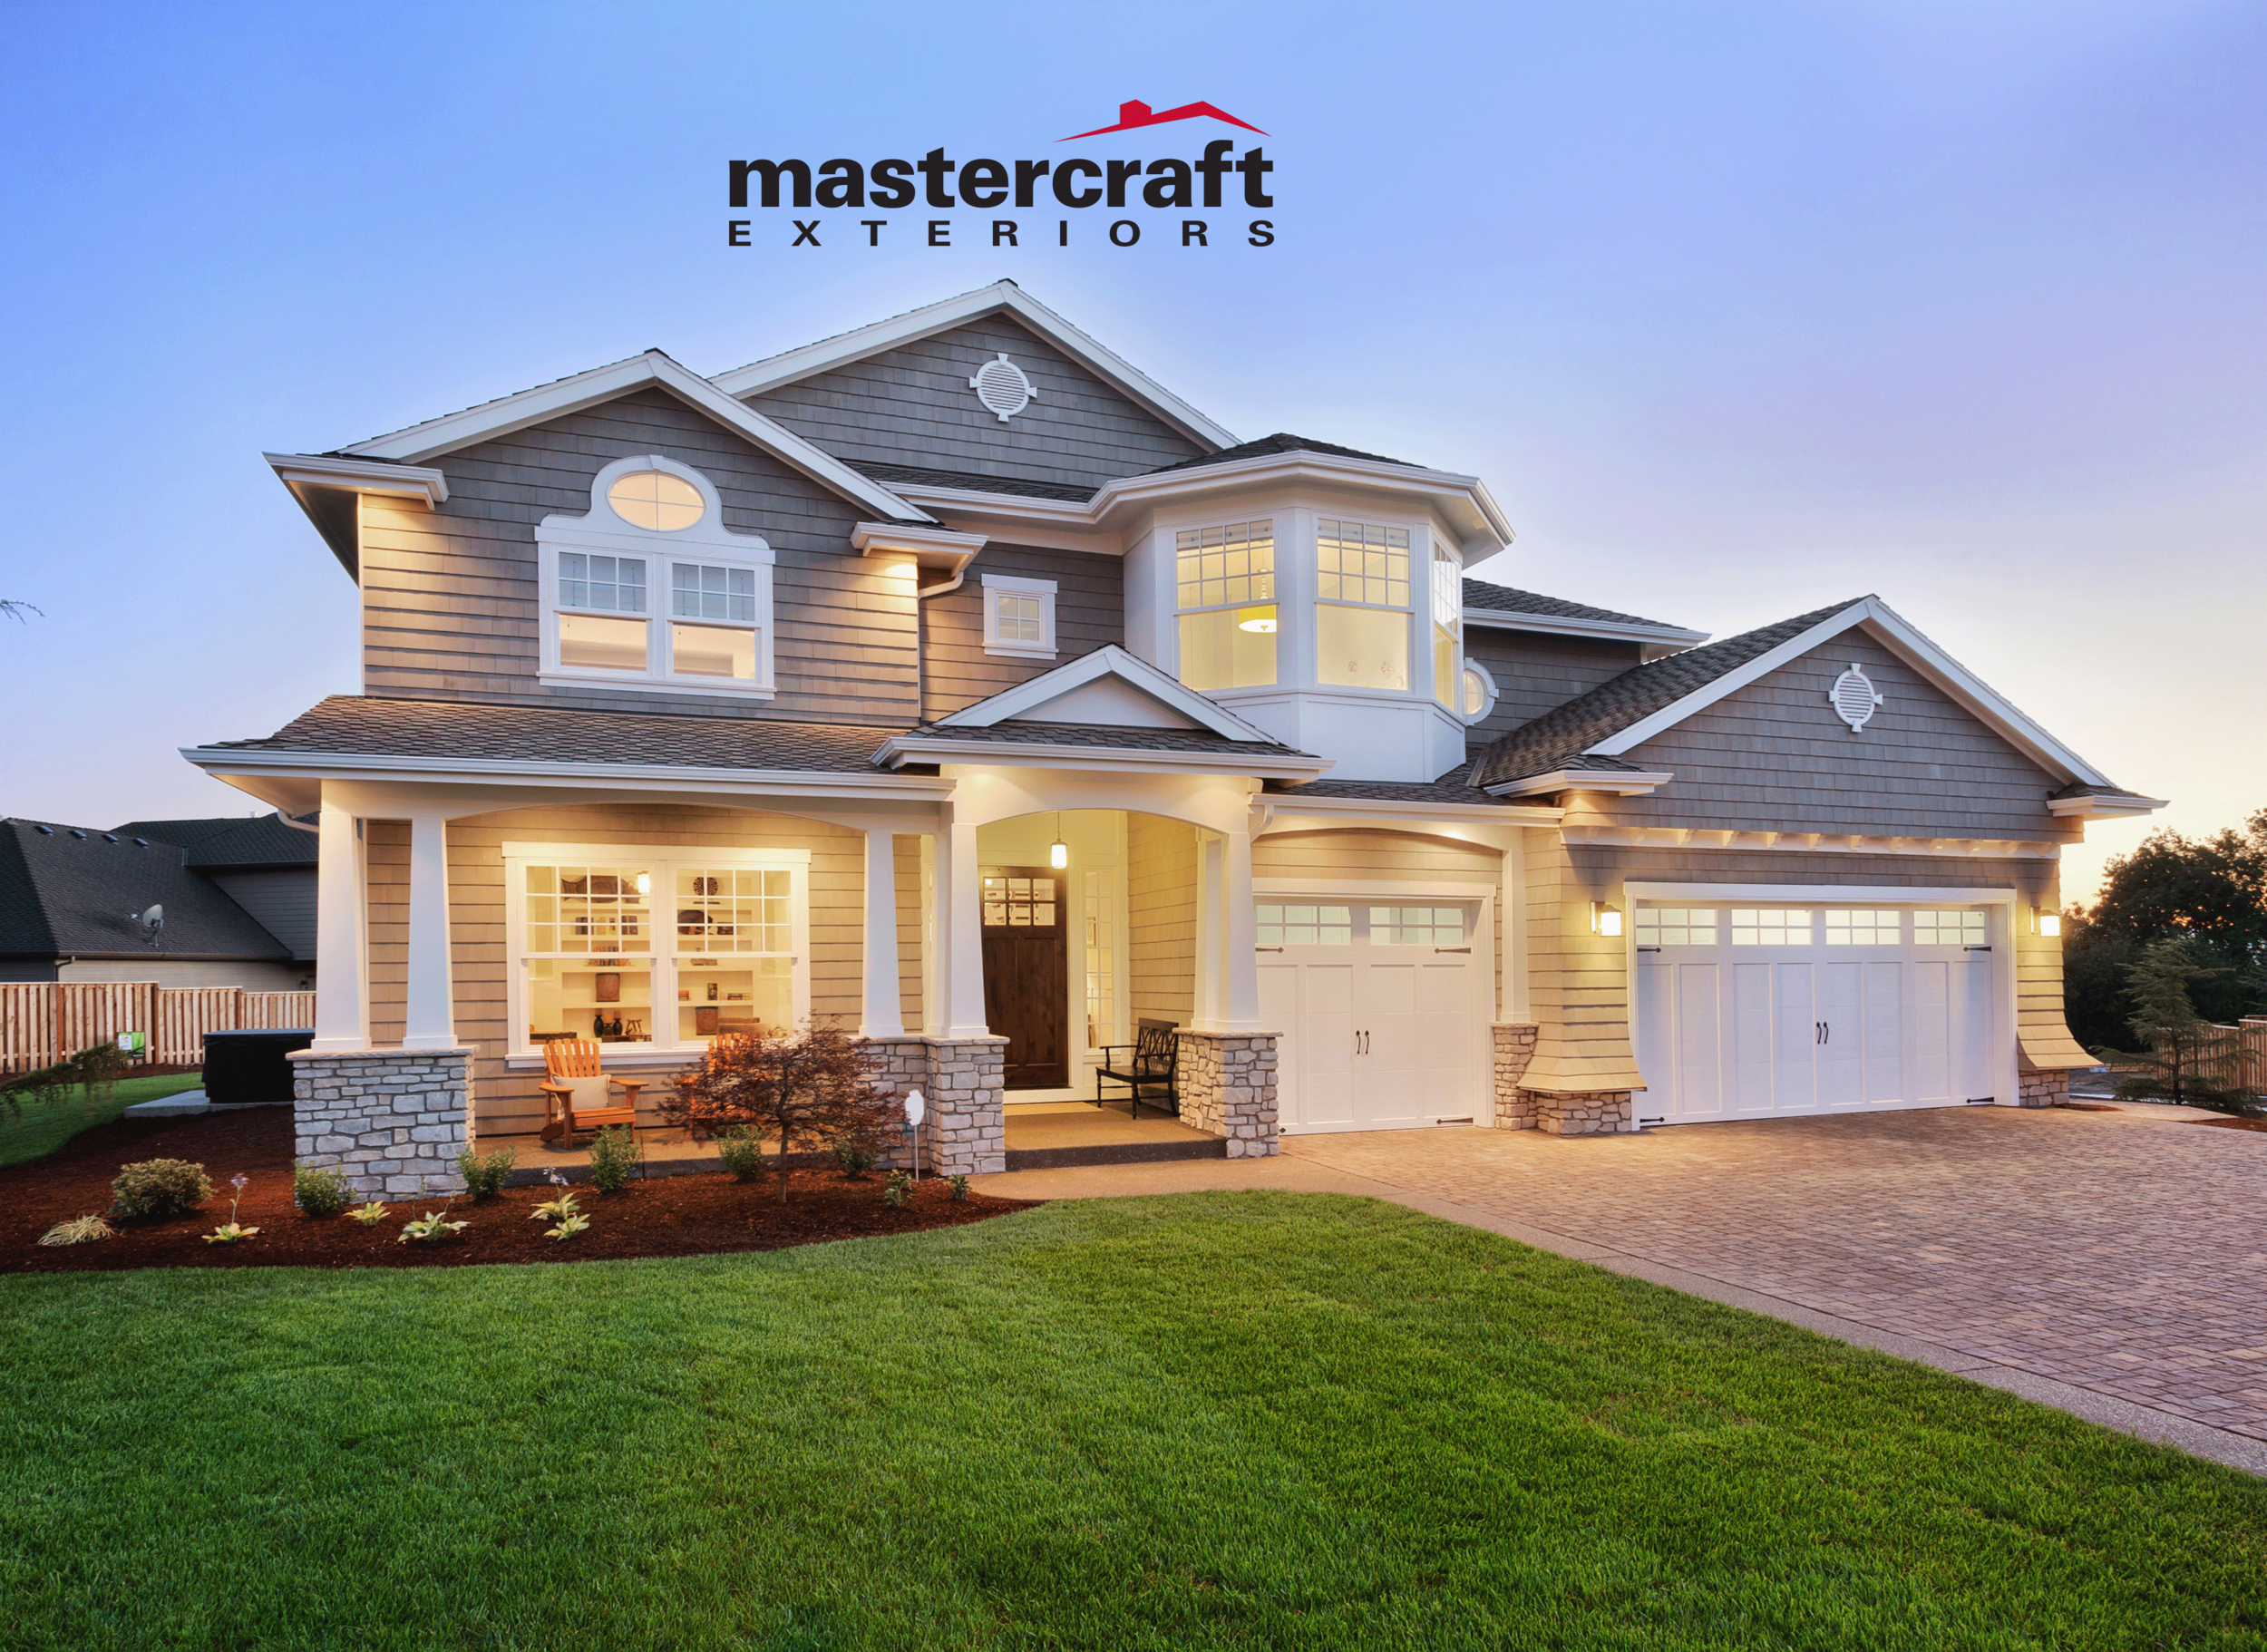 """Mastercraft Exteriors   We are fortunate to help become a marketing/branding partner to Mastercraft exteriors. They have over 30 years of experience and track record in business. This last year we have helped """"remodel"""" their image. We help target market to their specific customers by many key demographics by diligently defining their ideal customers, understand their buying preferences and find precision approaches to help them help more homeowners and businesses for roofs, siding, windows and more.  We help curate their branding image, marketing plan, and how it is carried out while making sure their investment is treated as we are looking to generate a return on their investments.    Services provided:    Re-Branding Image  Essential Digital Fundamentals (Re-design and Essential Updating): Website, Google Business, Facebook, Instagram, and multiple 3rd party sites specific to their industry for reviews and credibility rankings/searches/services.  Trade Shows: Signage Designed and Printed, Branded Tablecloths, Promotional Items and Giveaways  On Going Marketing Help: Team Apparel, Business Cards, Yard Signage, Designing Ads, Fliers, Door Hangers and consult on marketing strategies."""